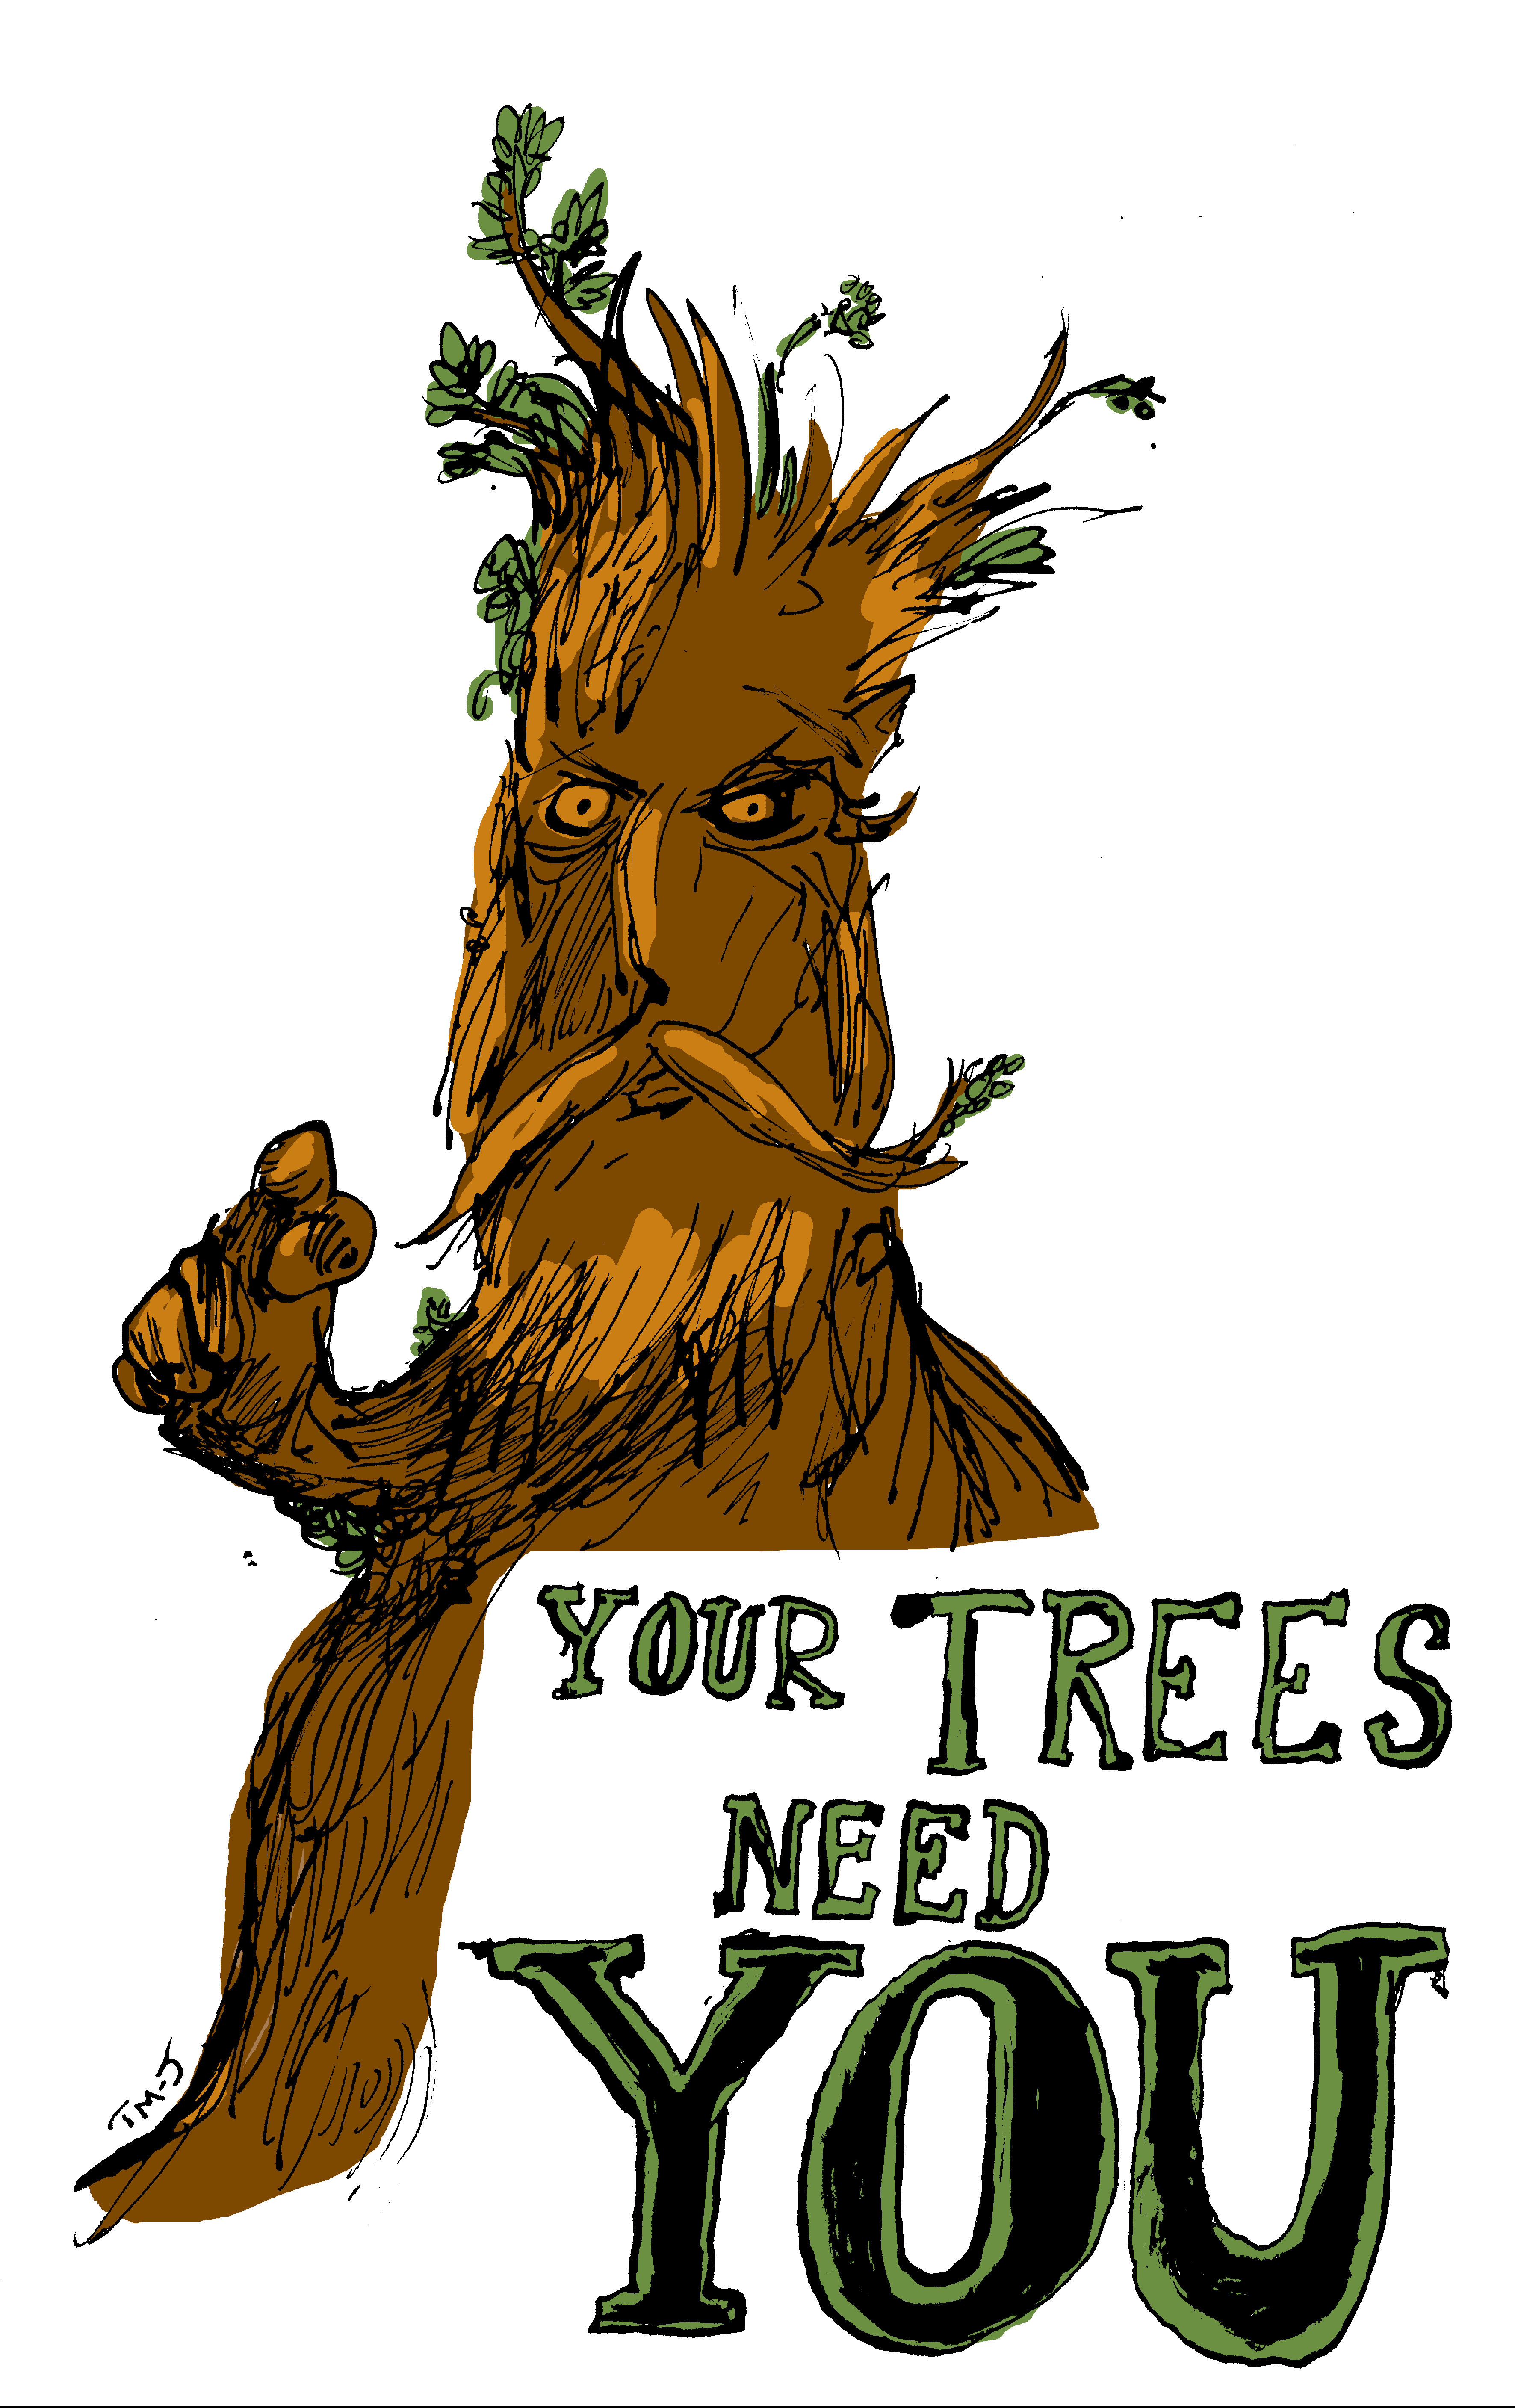 YOUR TREES NEED YOU - Tom Morgan Jones